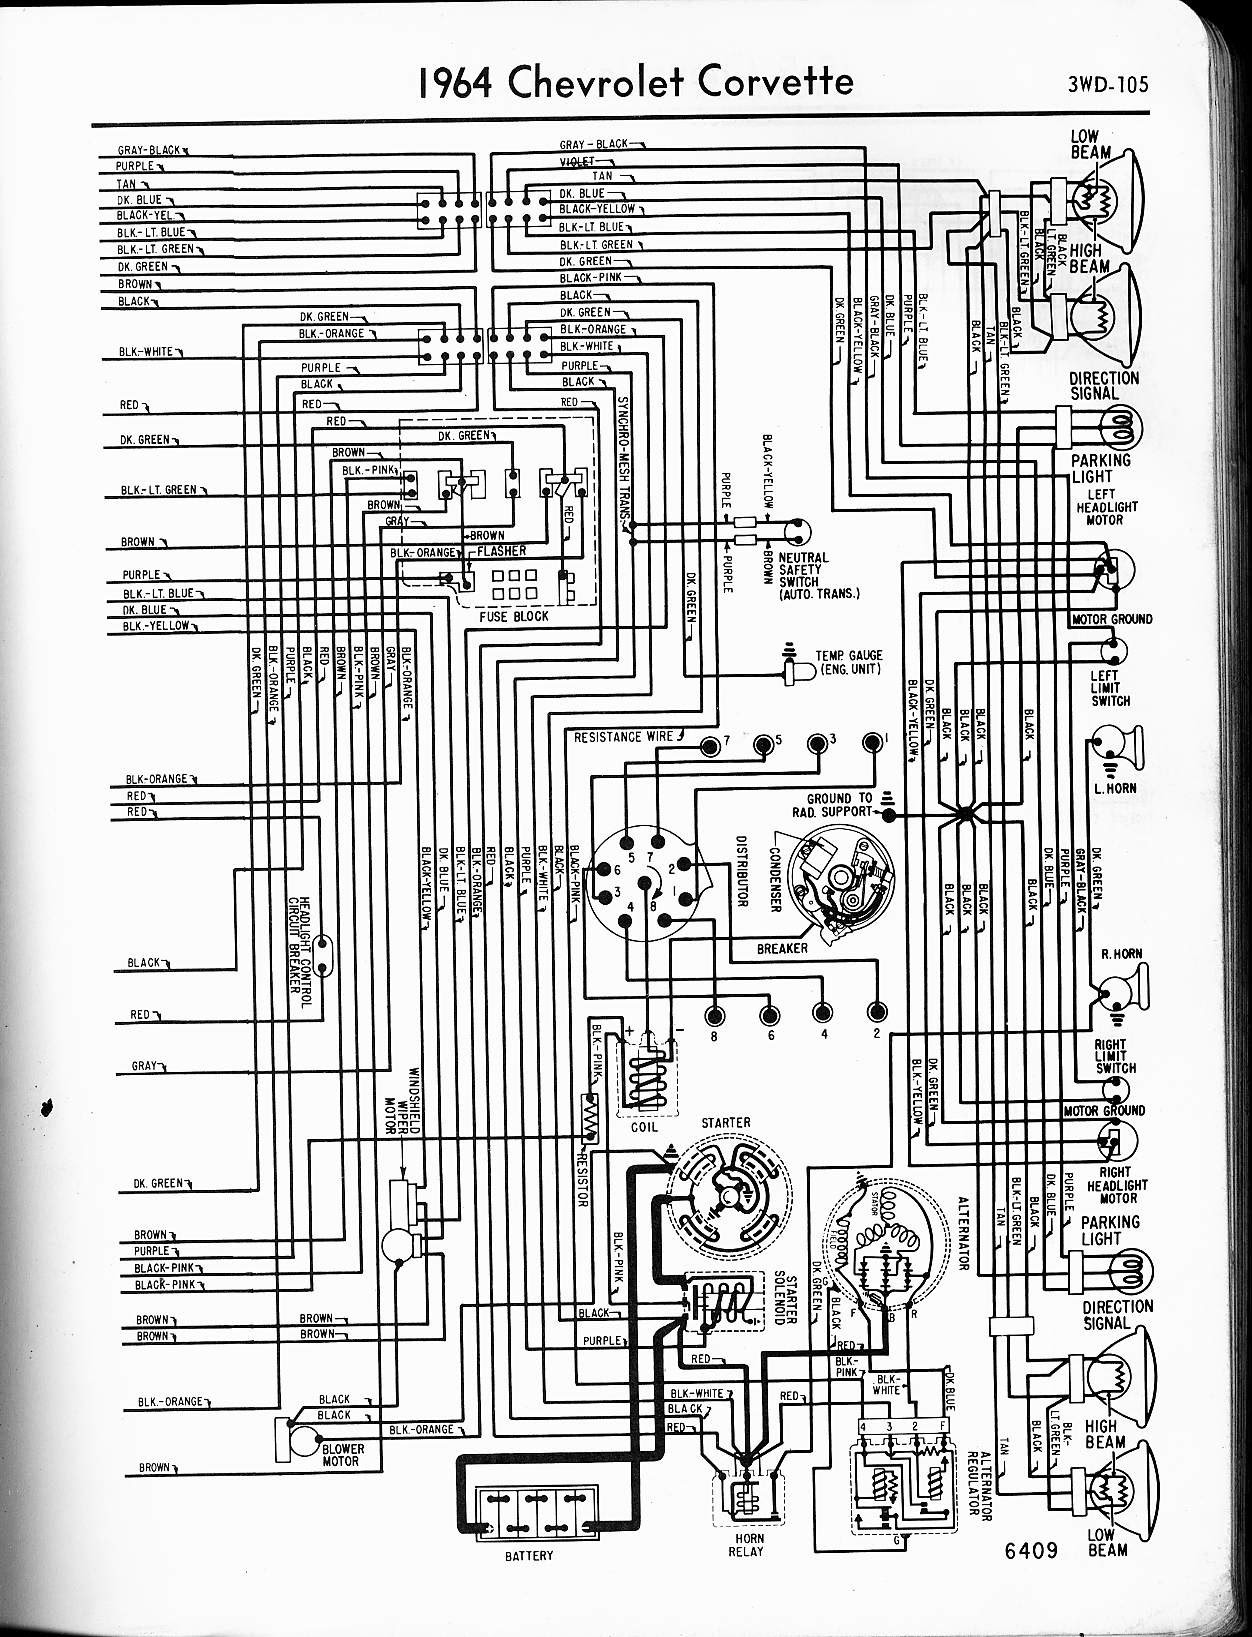 1969 Corvette Wiring Schematic Wiring Diagram For Bristol Compressor 2005ram Citroen Wirings1 Jeanjaures37 Fr